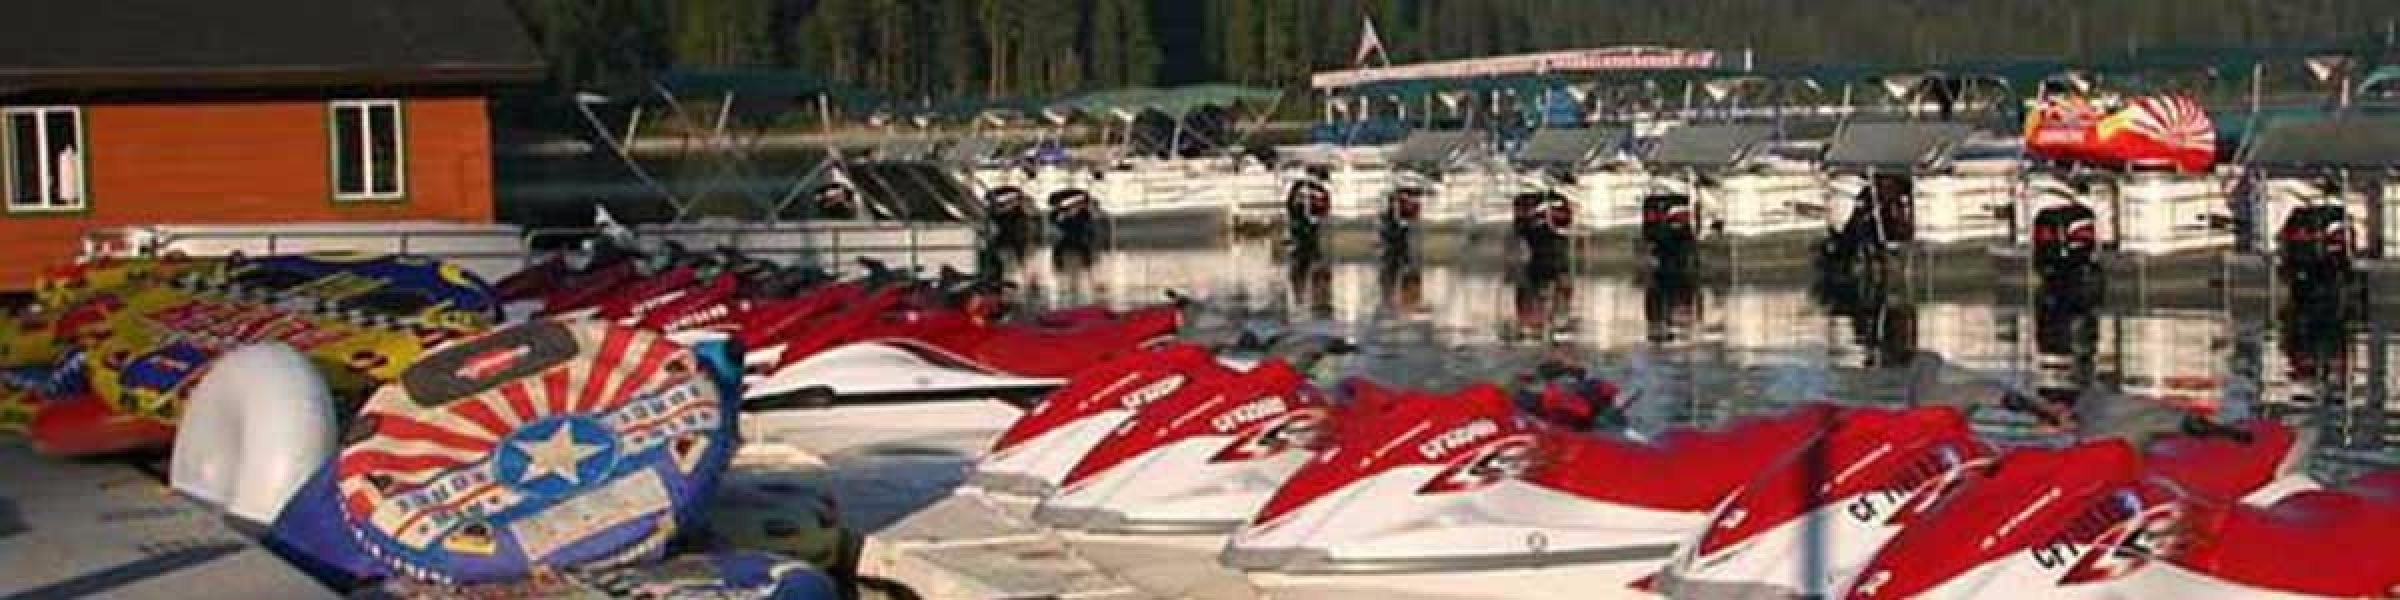 2015-jet-skis-at-bass-lake-marina-slider